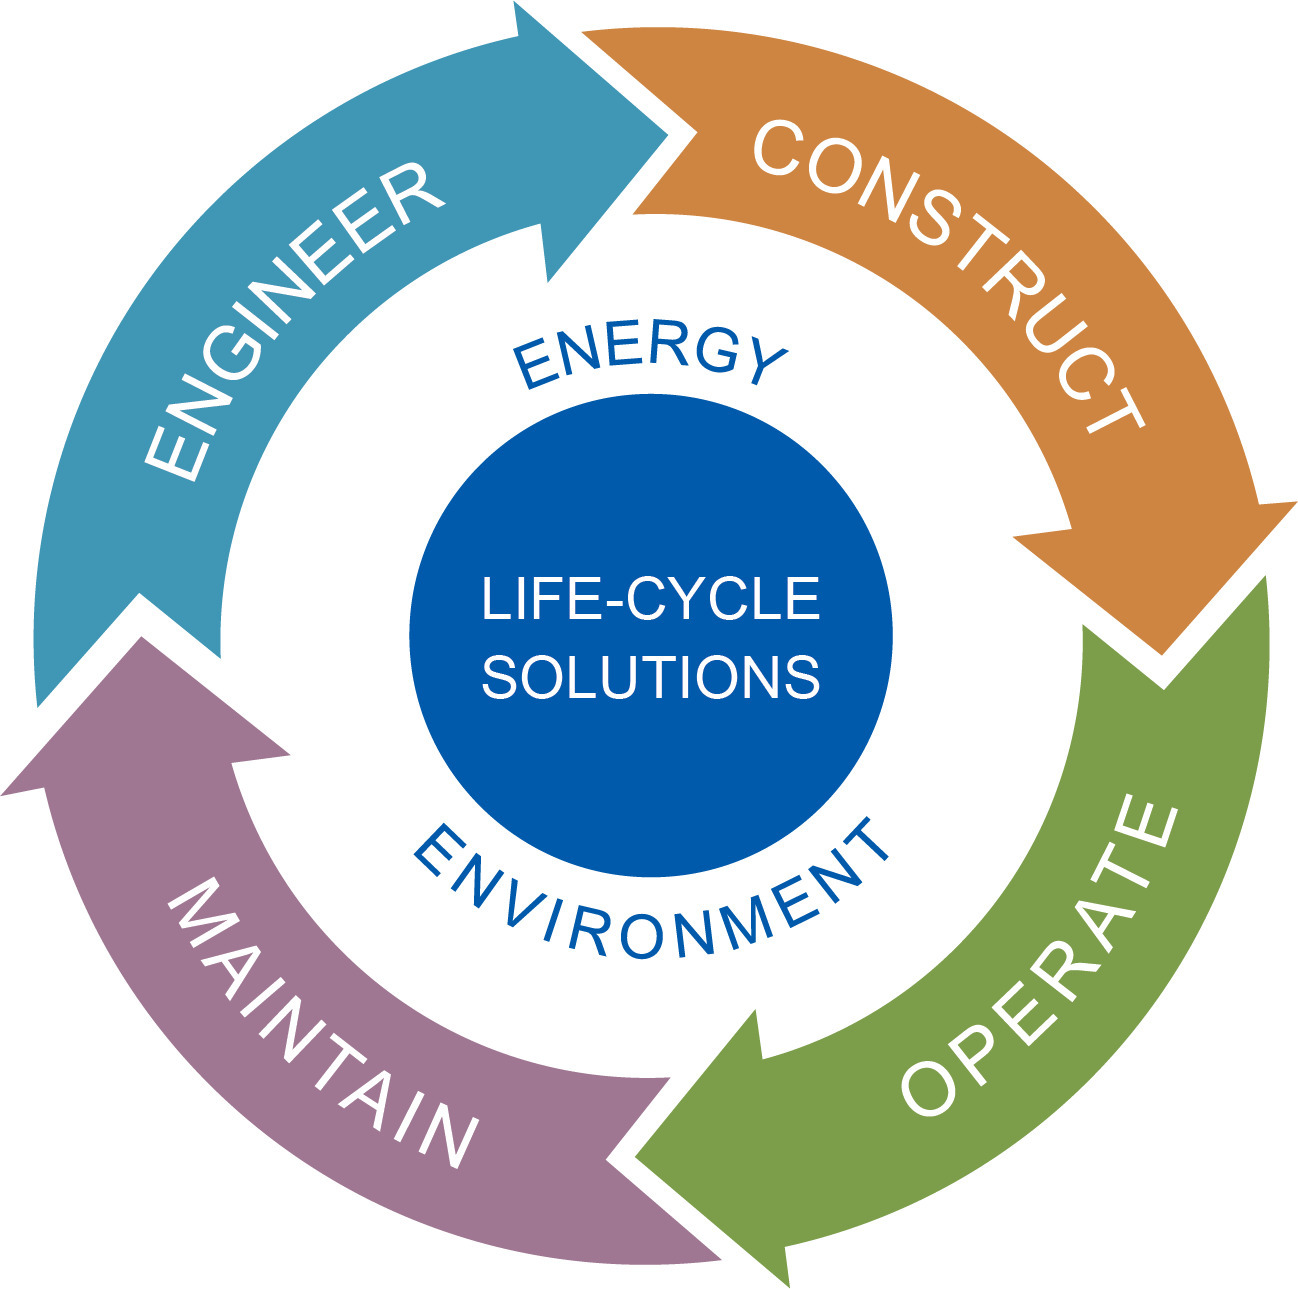 Overview LifeCycle Graphic